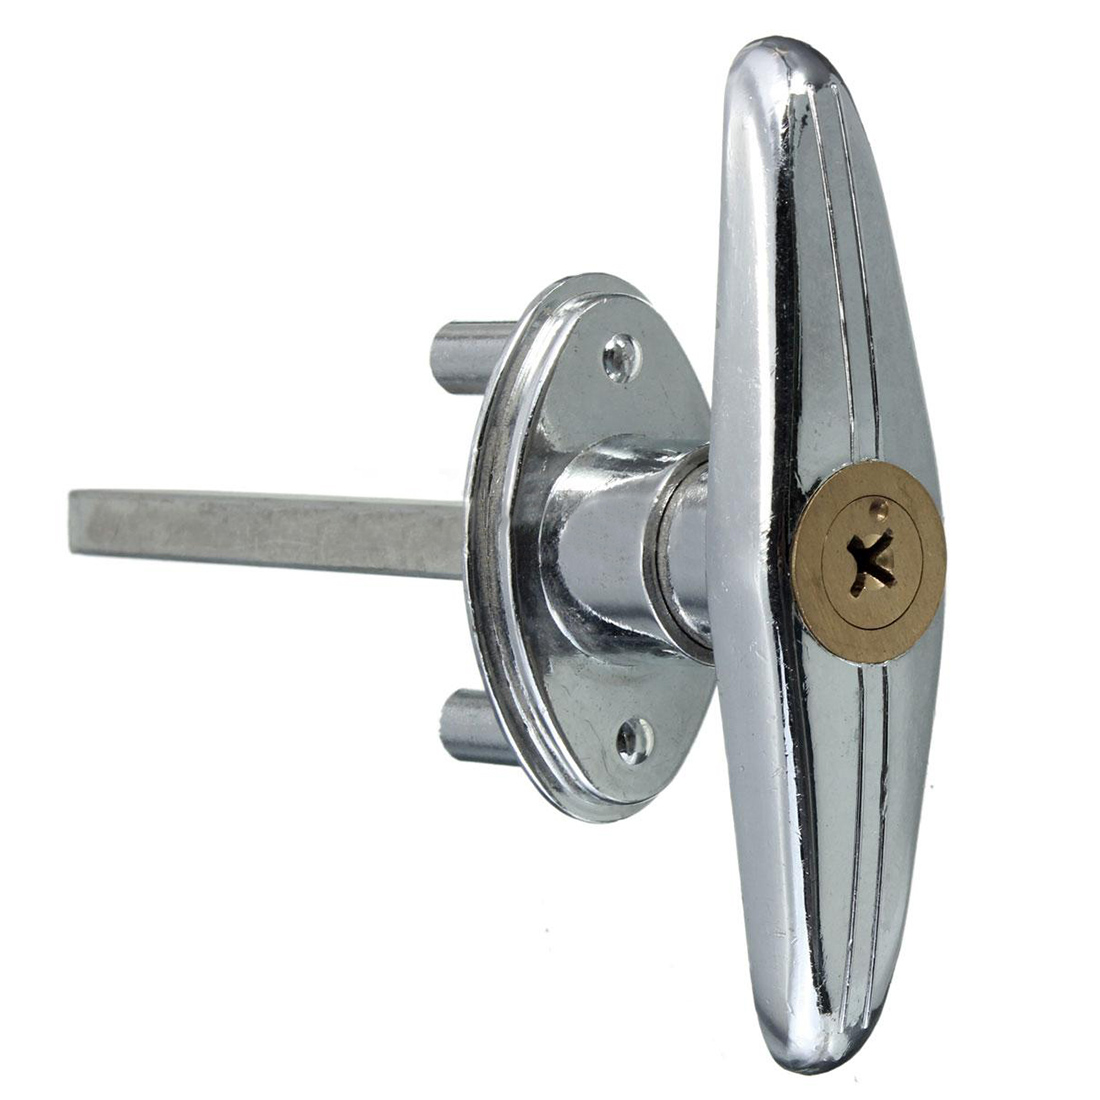 Garage door locks handles promotion shop for promotional for Door handle with lock